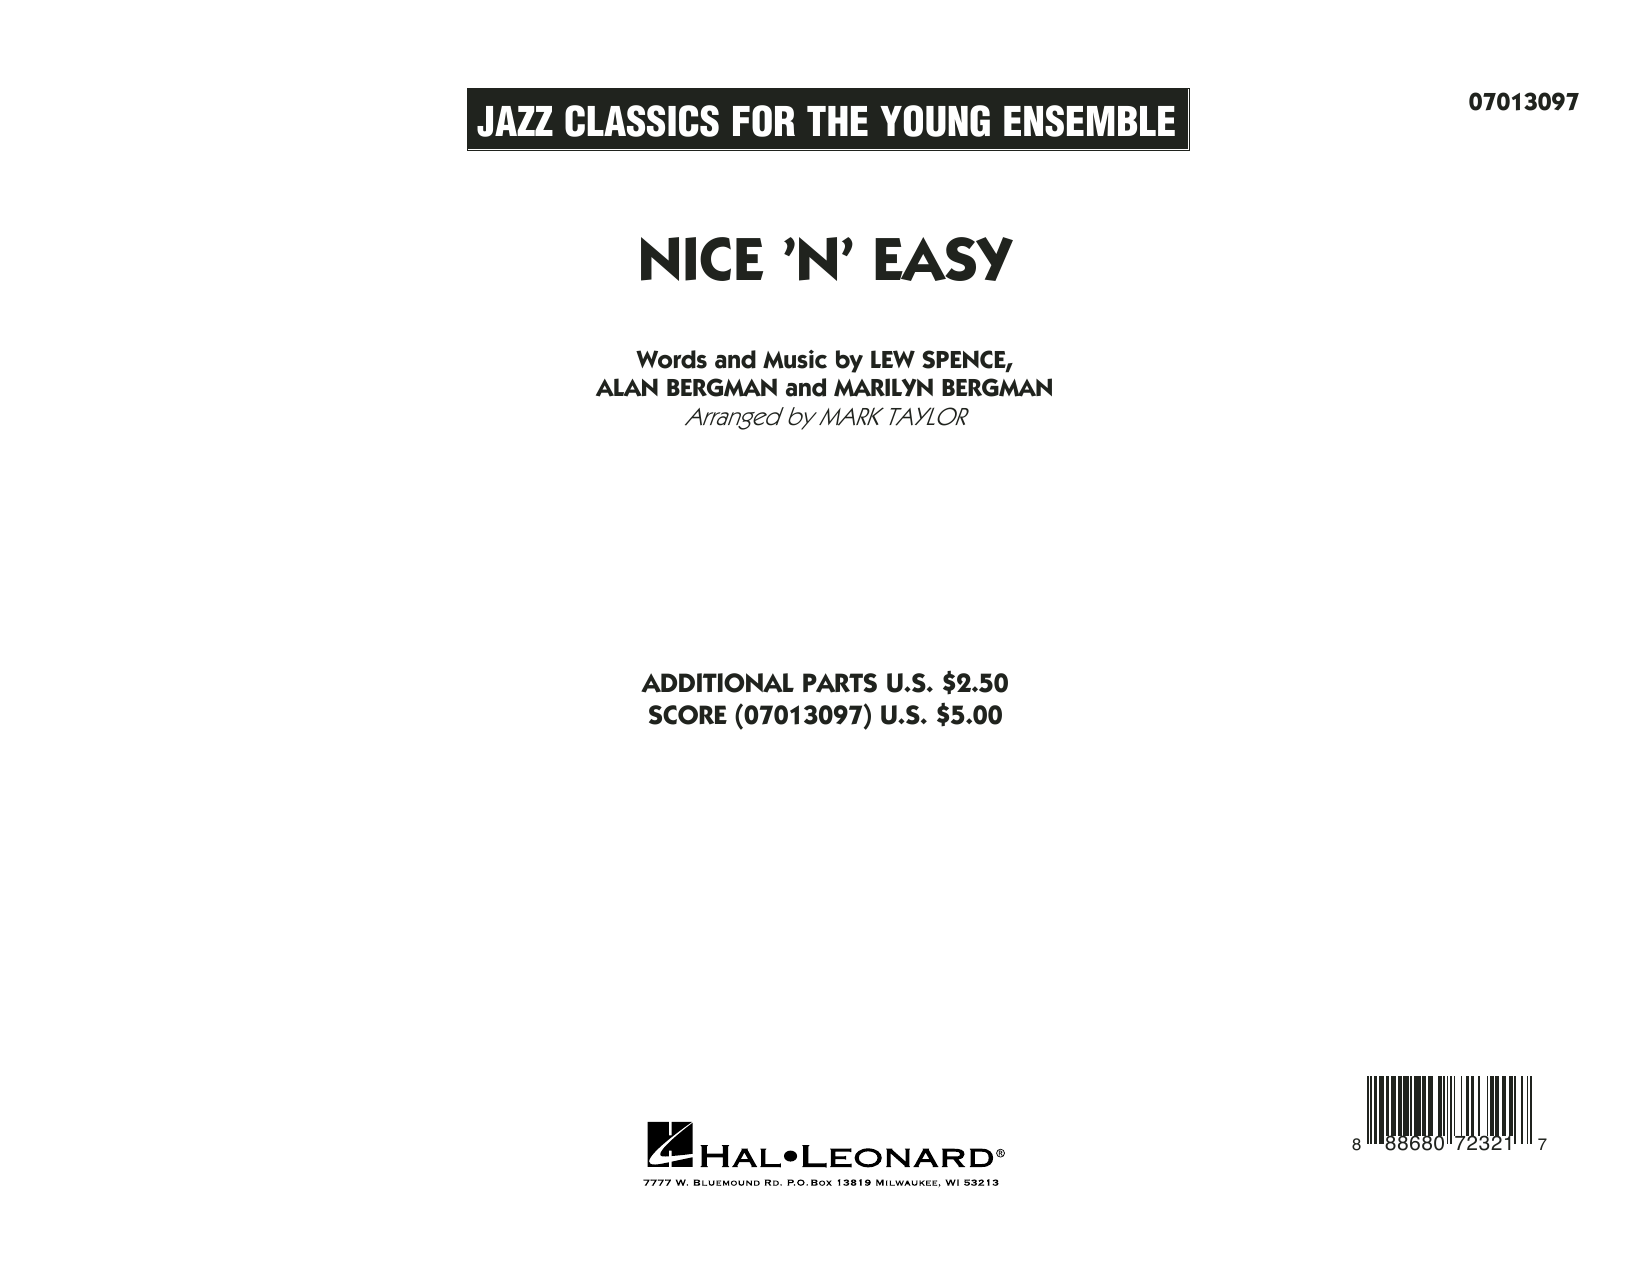 Mark Taylor Nice 'n' Easy - Conductor Score (Full Score) sheet music notes and chords. Download Printable PDF.